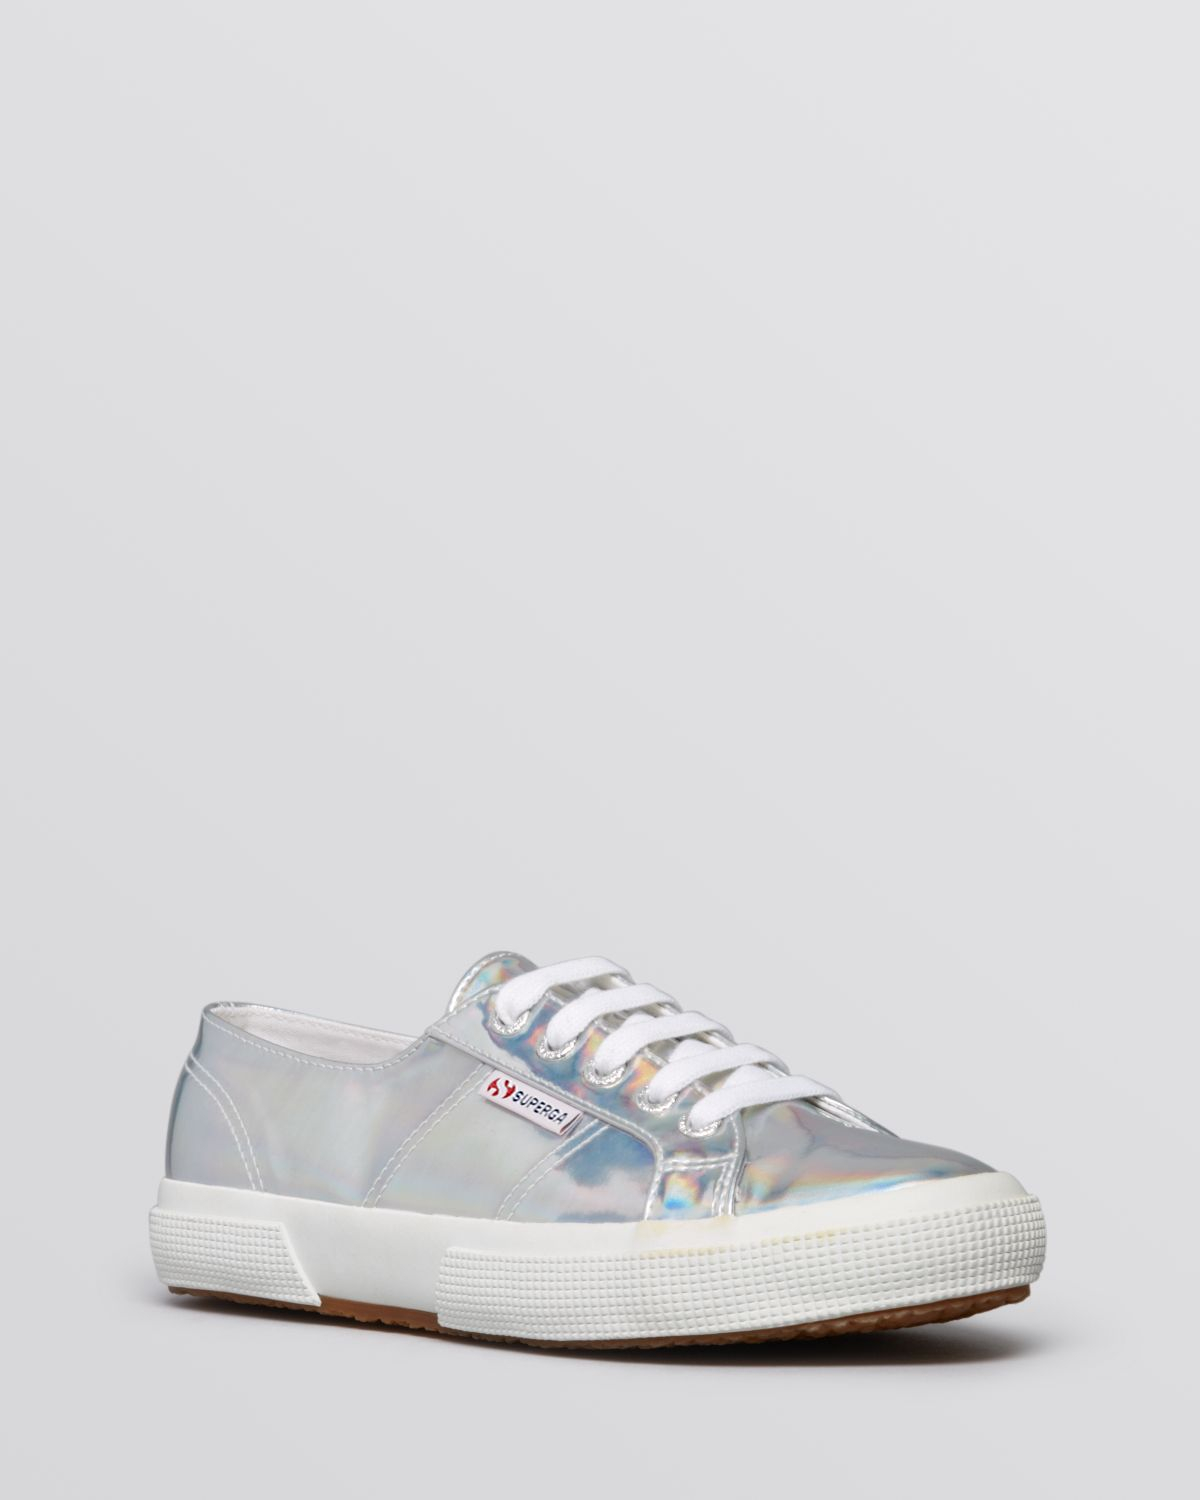 superga flat lace up sneakers mirror metallic in silver lyst. Black Bedroom Furniture Sets. Home Design Ideas